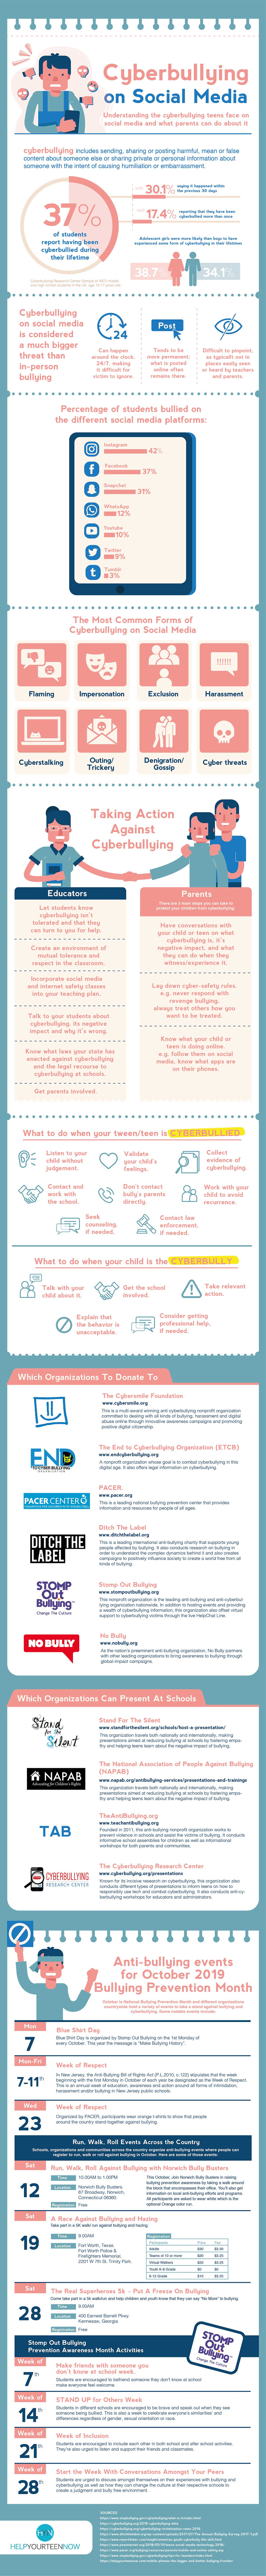 Cyberbullying On Social Media Infographic